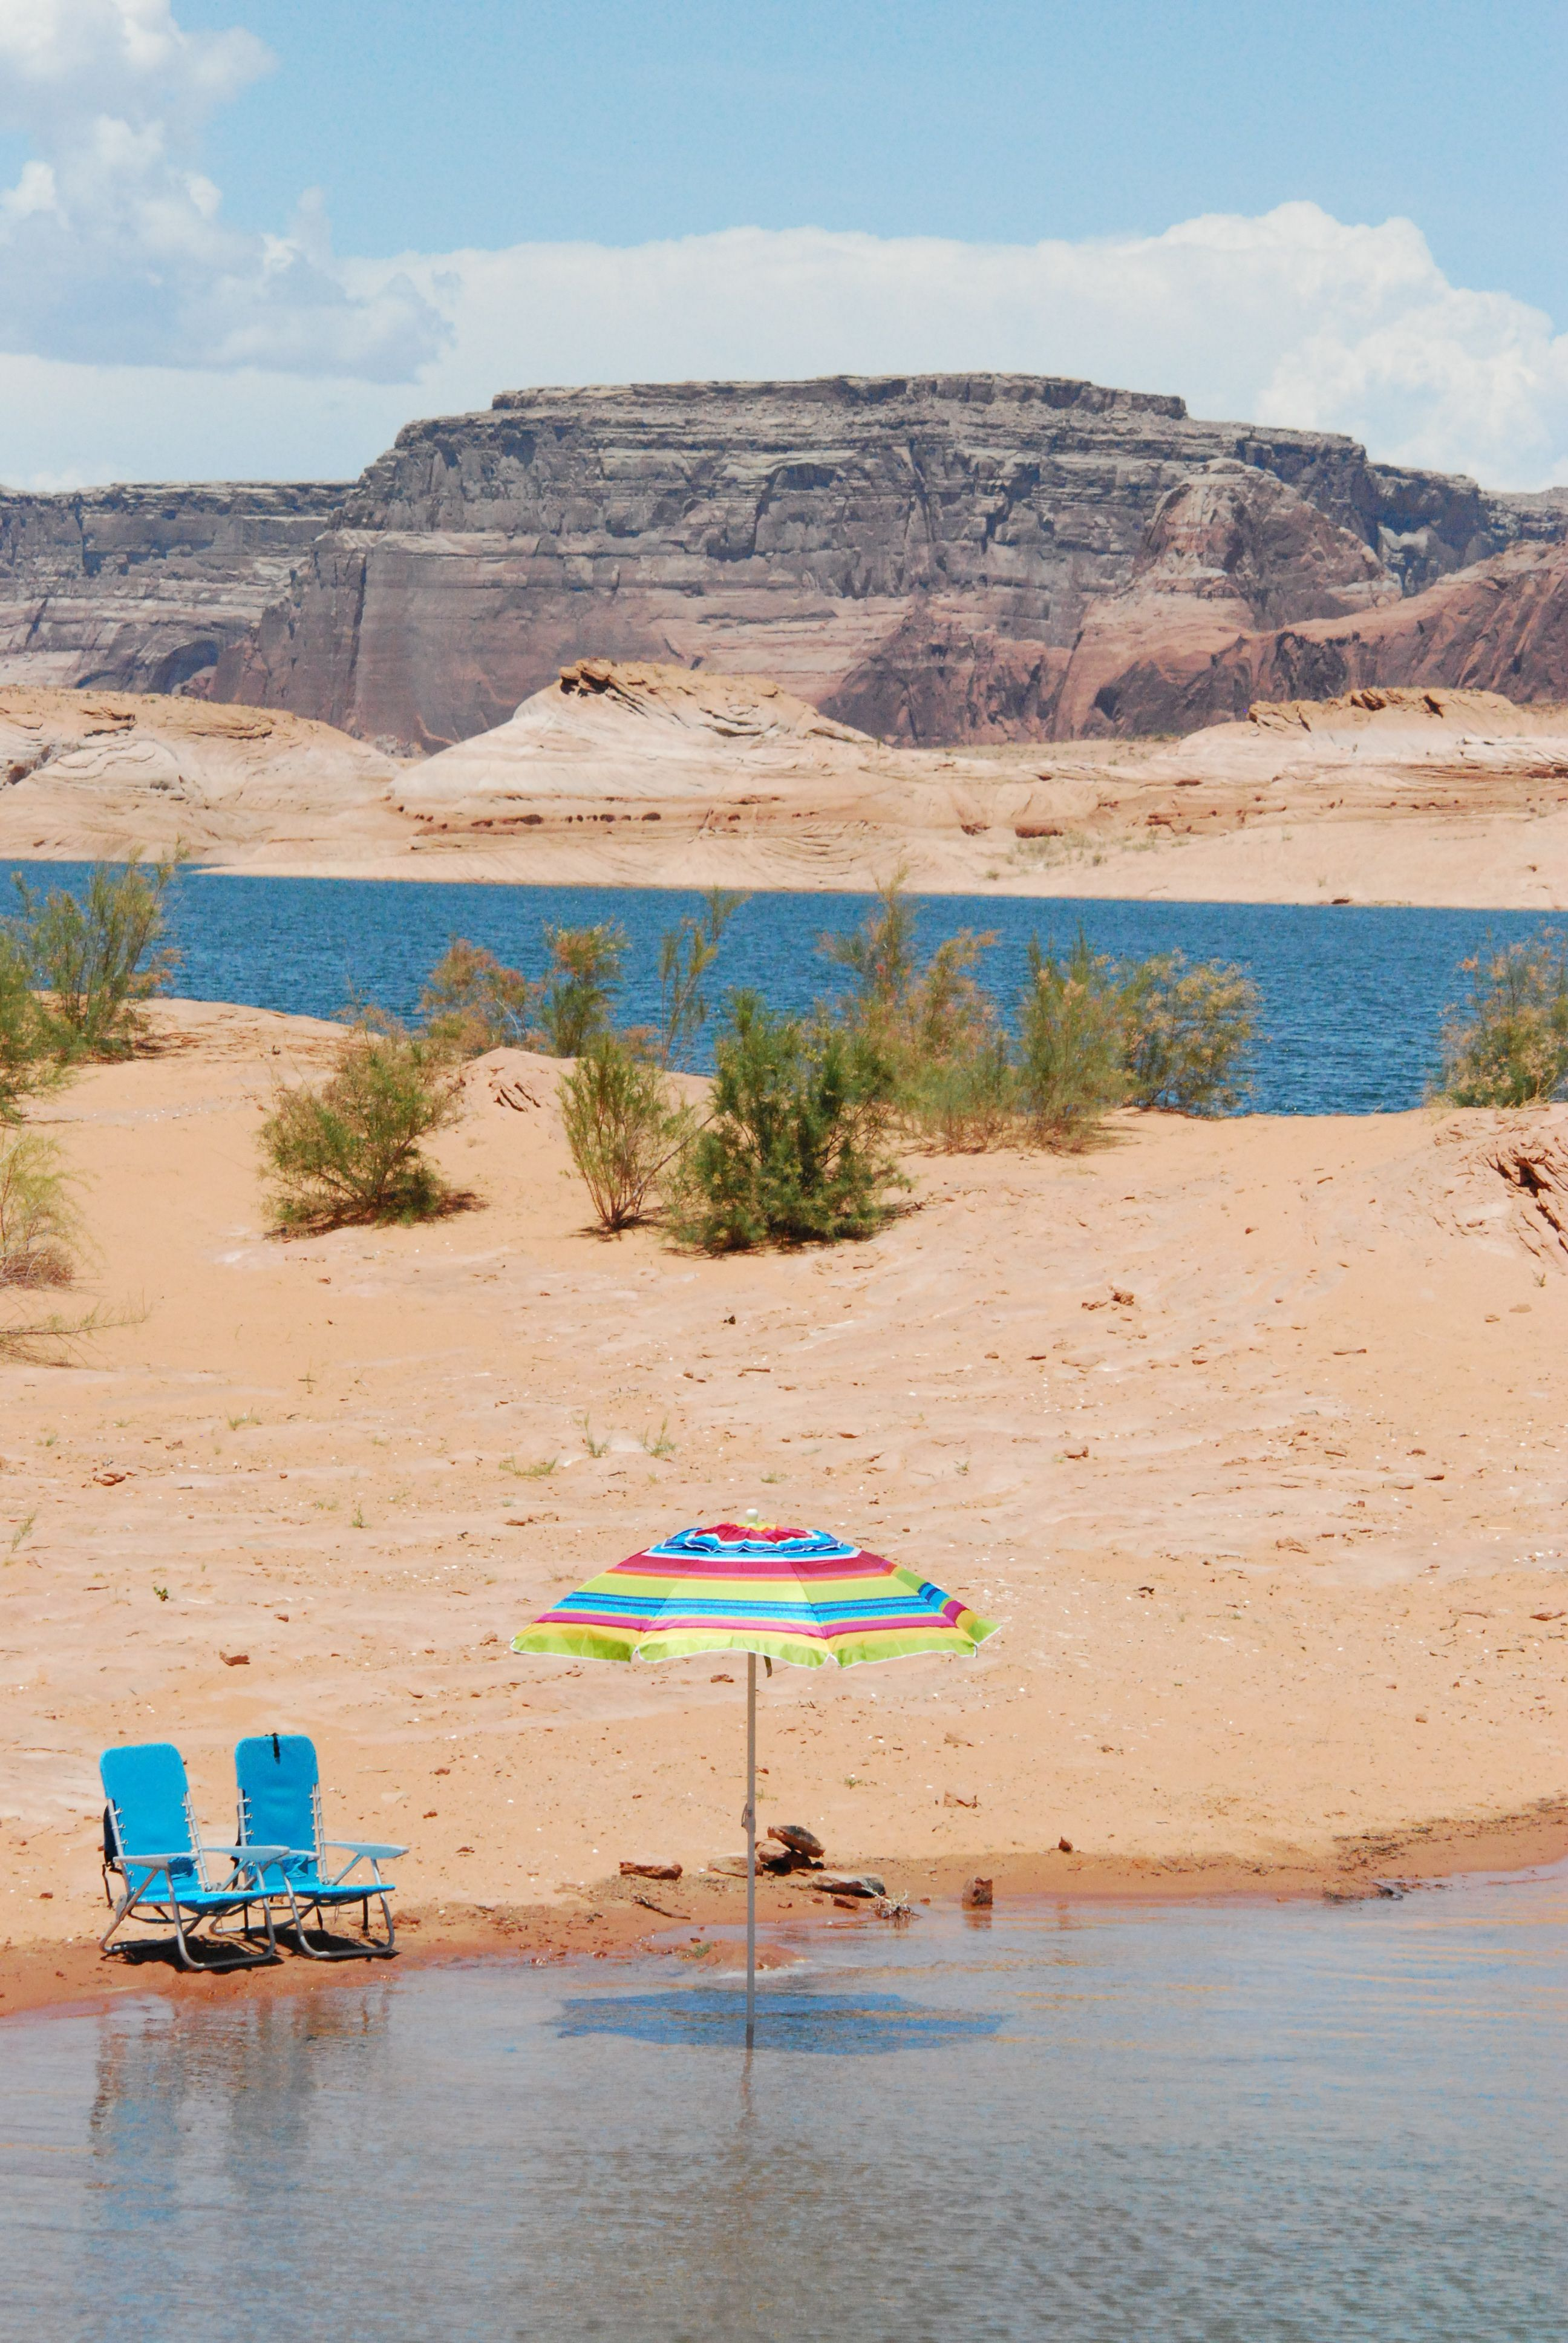 Lake Powell is a reservoir on the Colorado River, straddling the border between Utah and Arizona. It is a major vacation spot that around 2 million people visit every year. Wikipedia